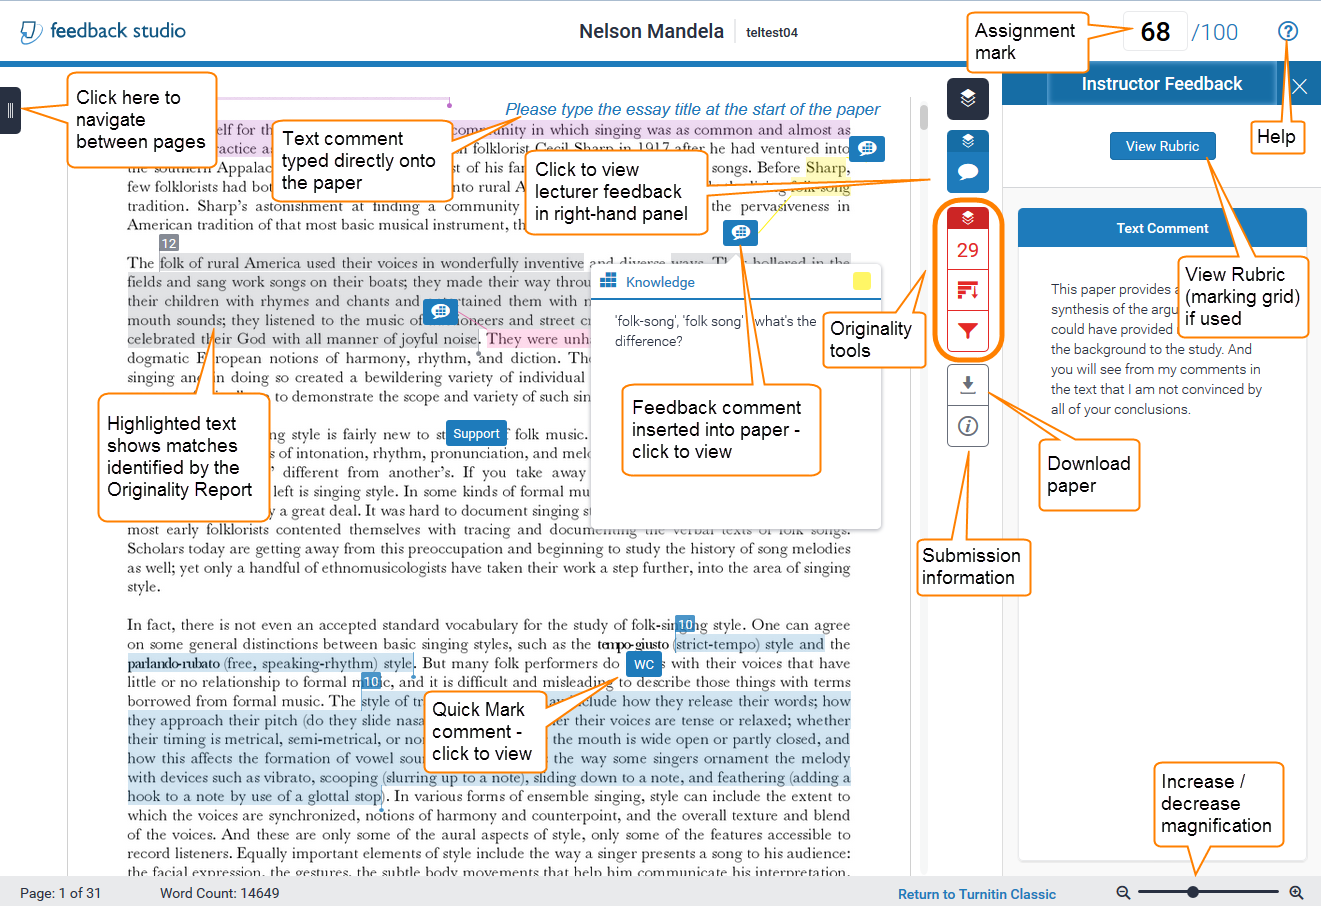 View of feedback studio annotated with features and feedback tools